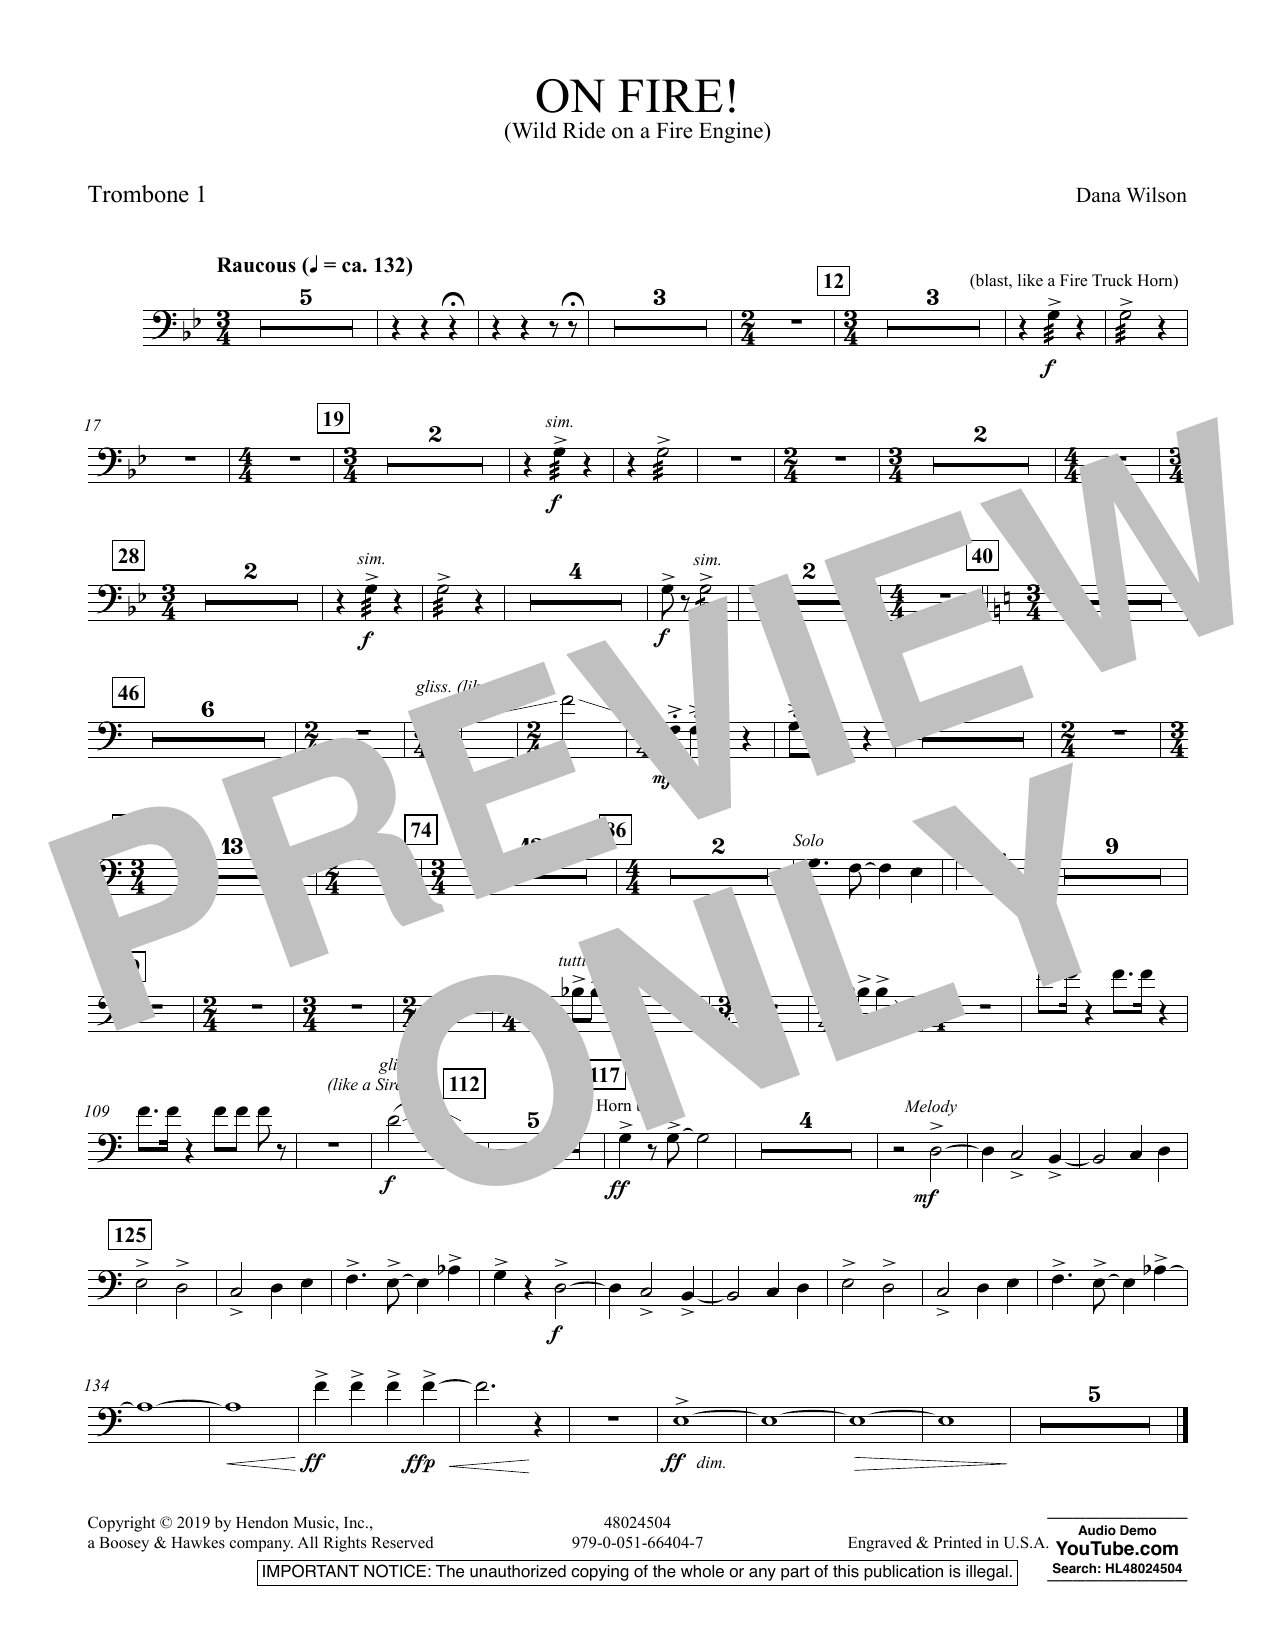 On Fire! (Wild Ride on a Fire Engine) - Trombone 1 (Concert Band)